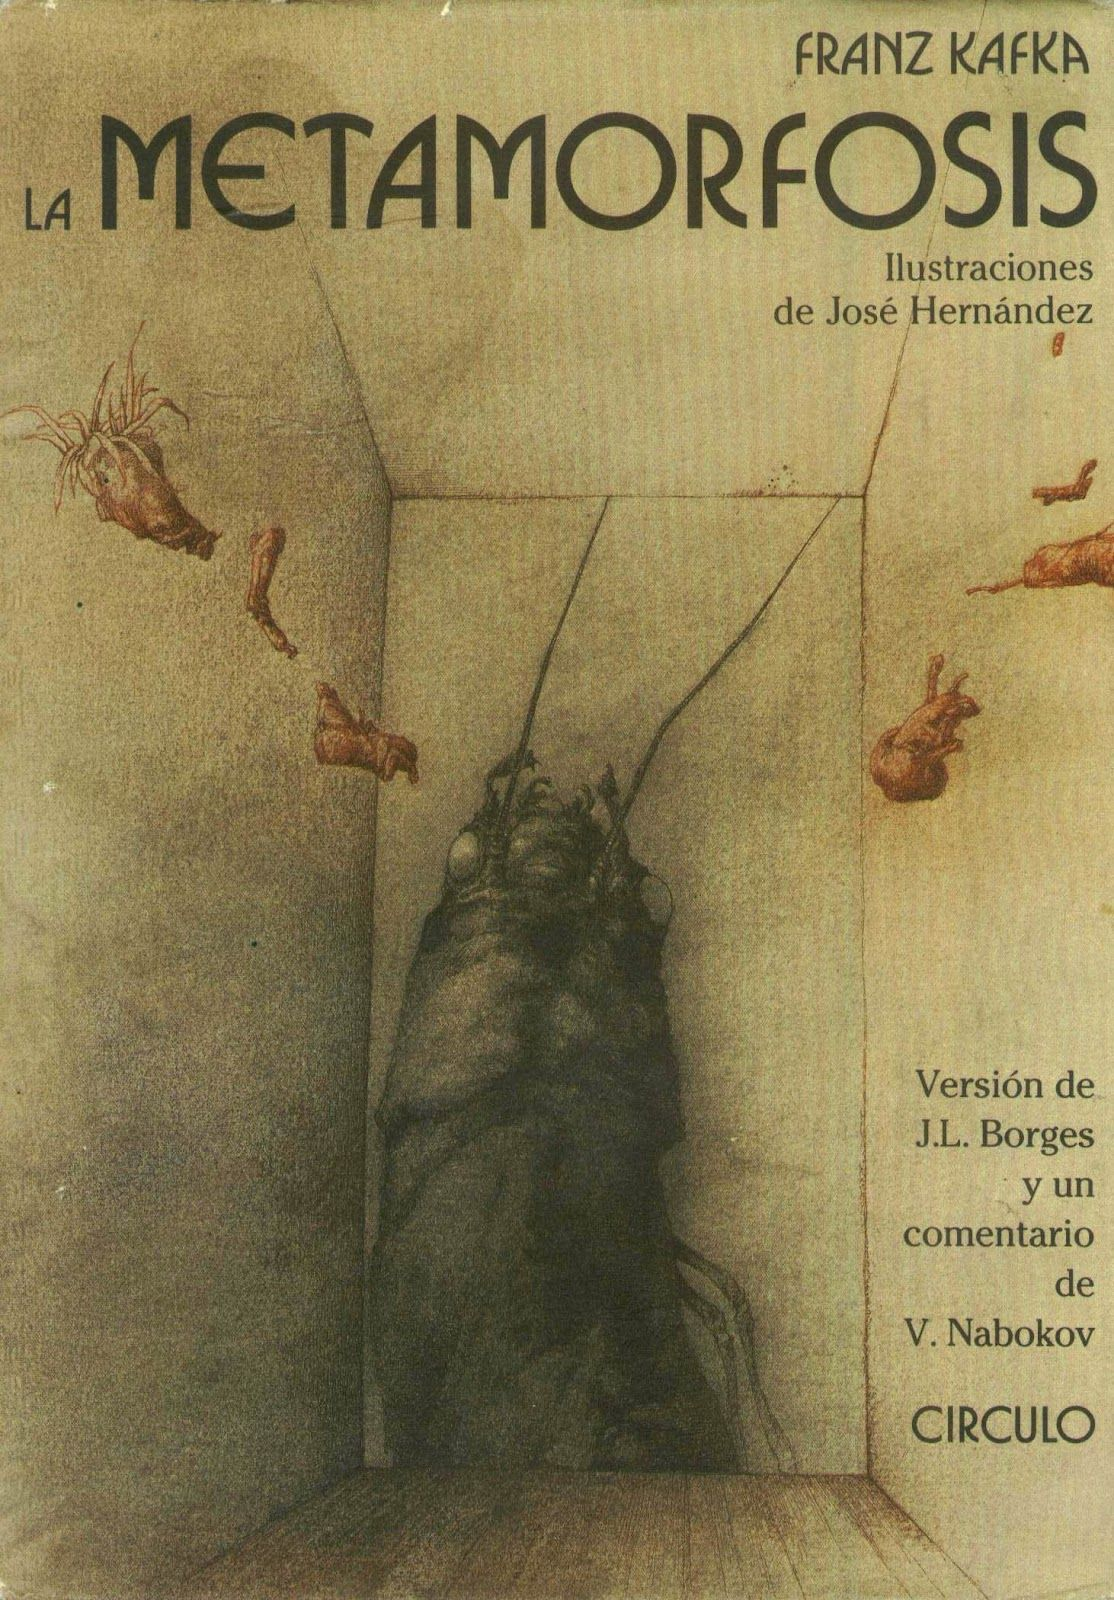 franz kafka acute s the metamorphosis illustrated by jos eacute hern aacute ndez franz kafkaacutes the metamorphosis illustrated by joseacute hernaacutendez